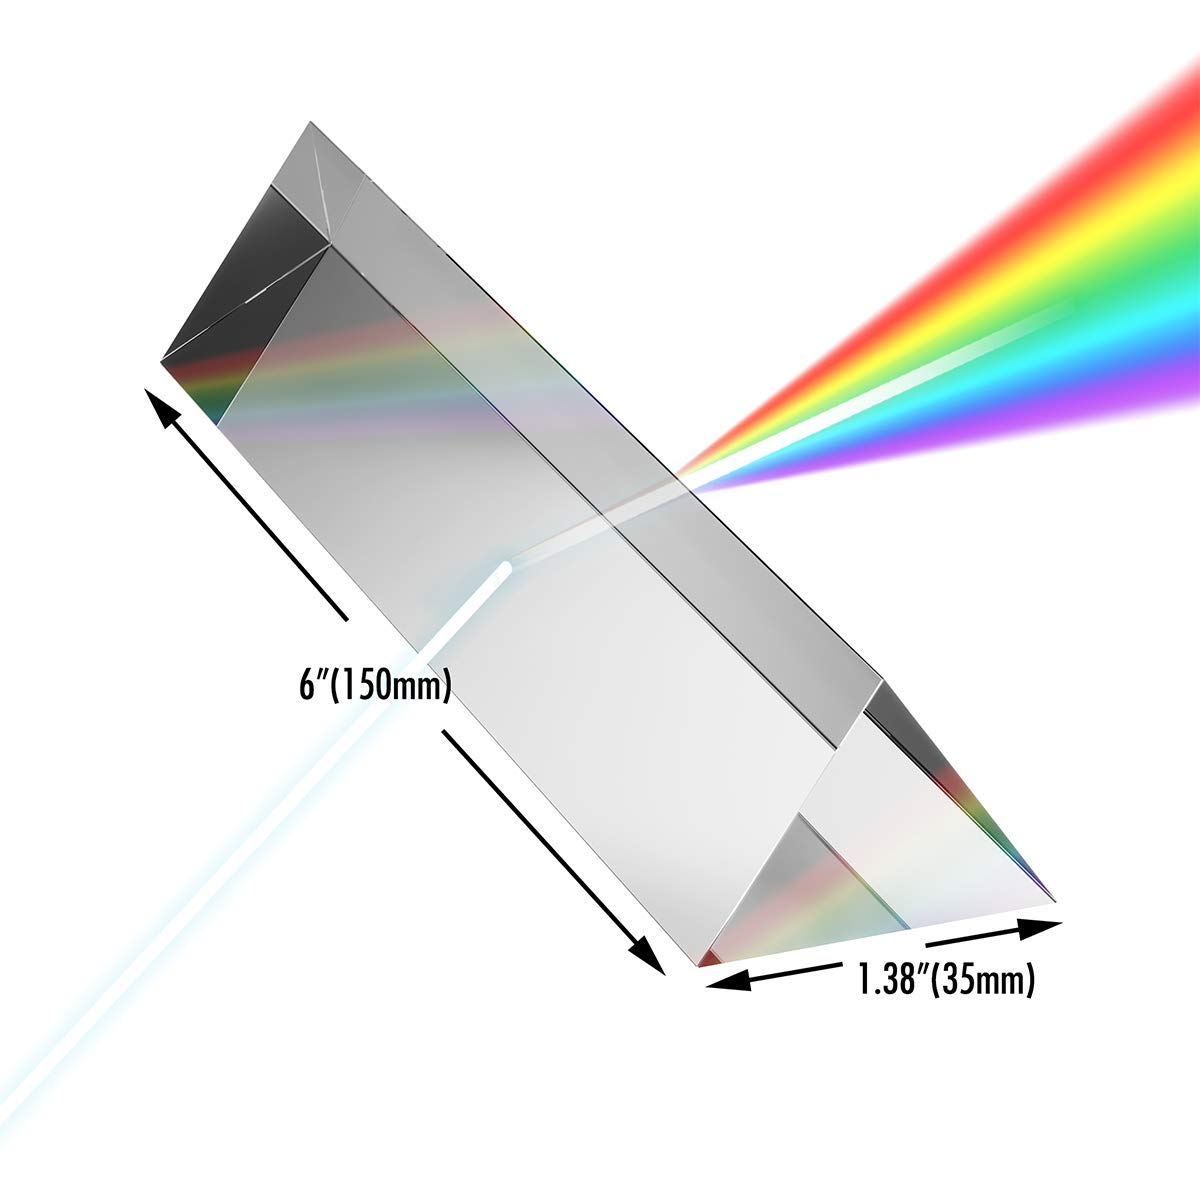 Unbreakable Light Prism for Photography Rainbow Filter Photo Effect Optical Camera Grade Crystal Triangular Glass with by Picino